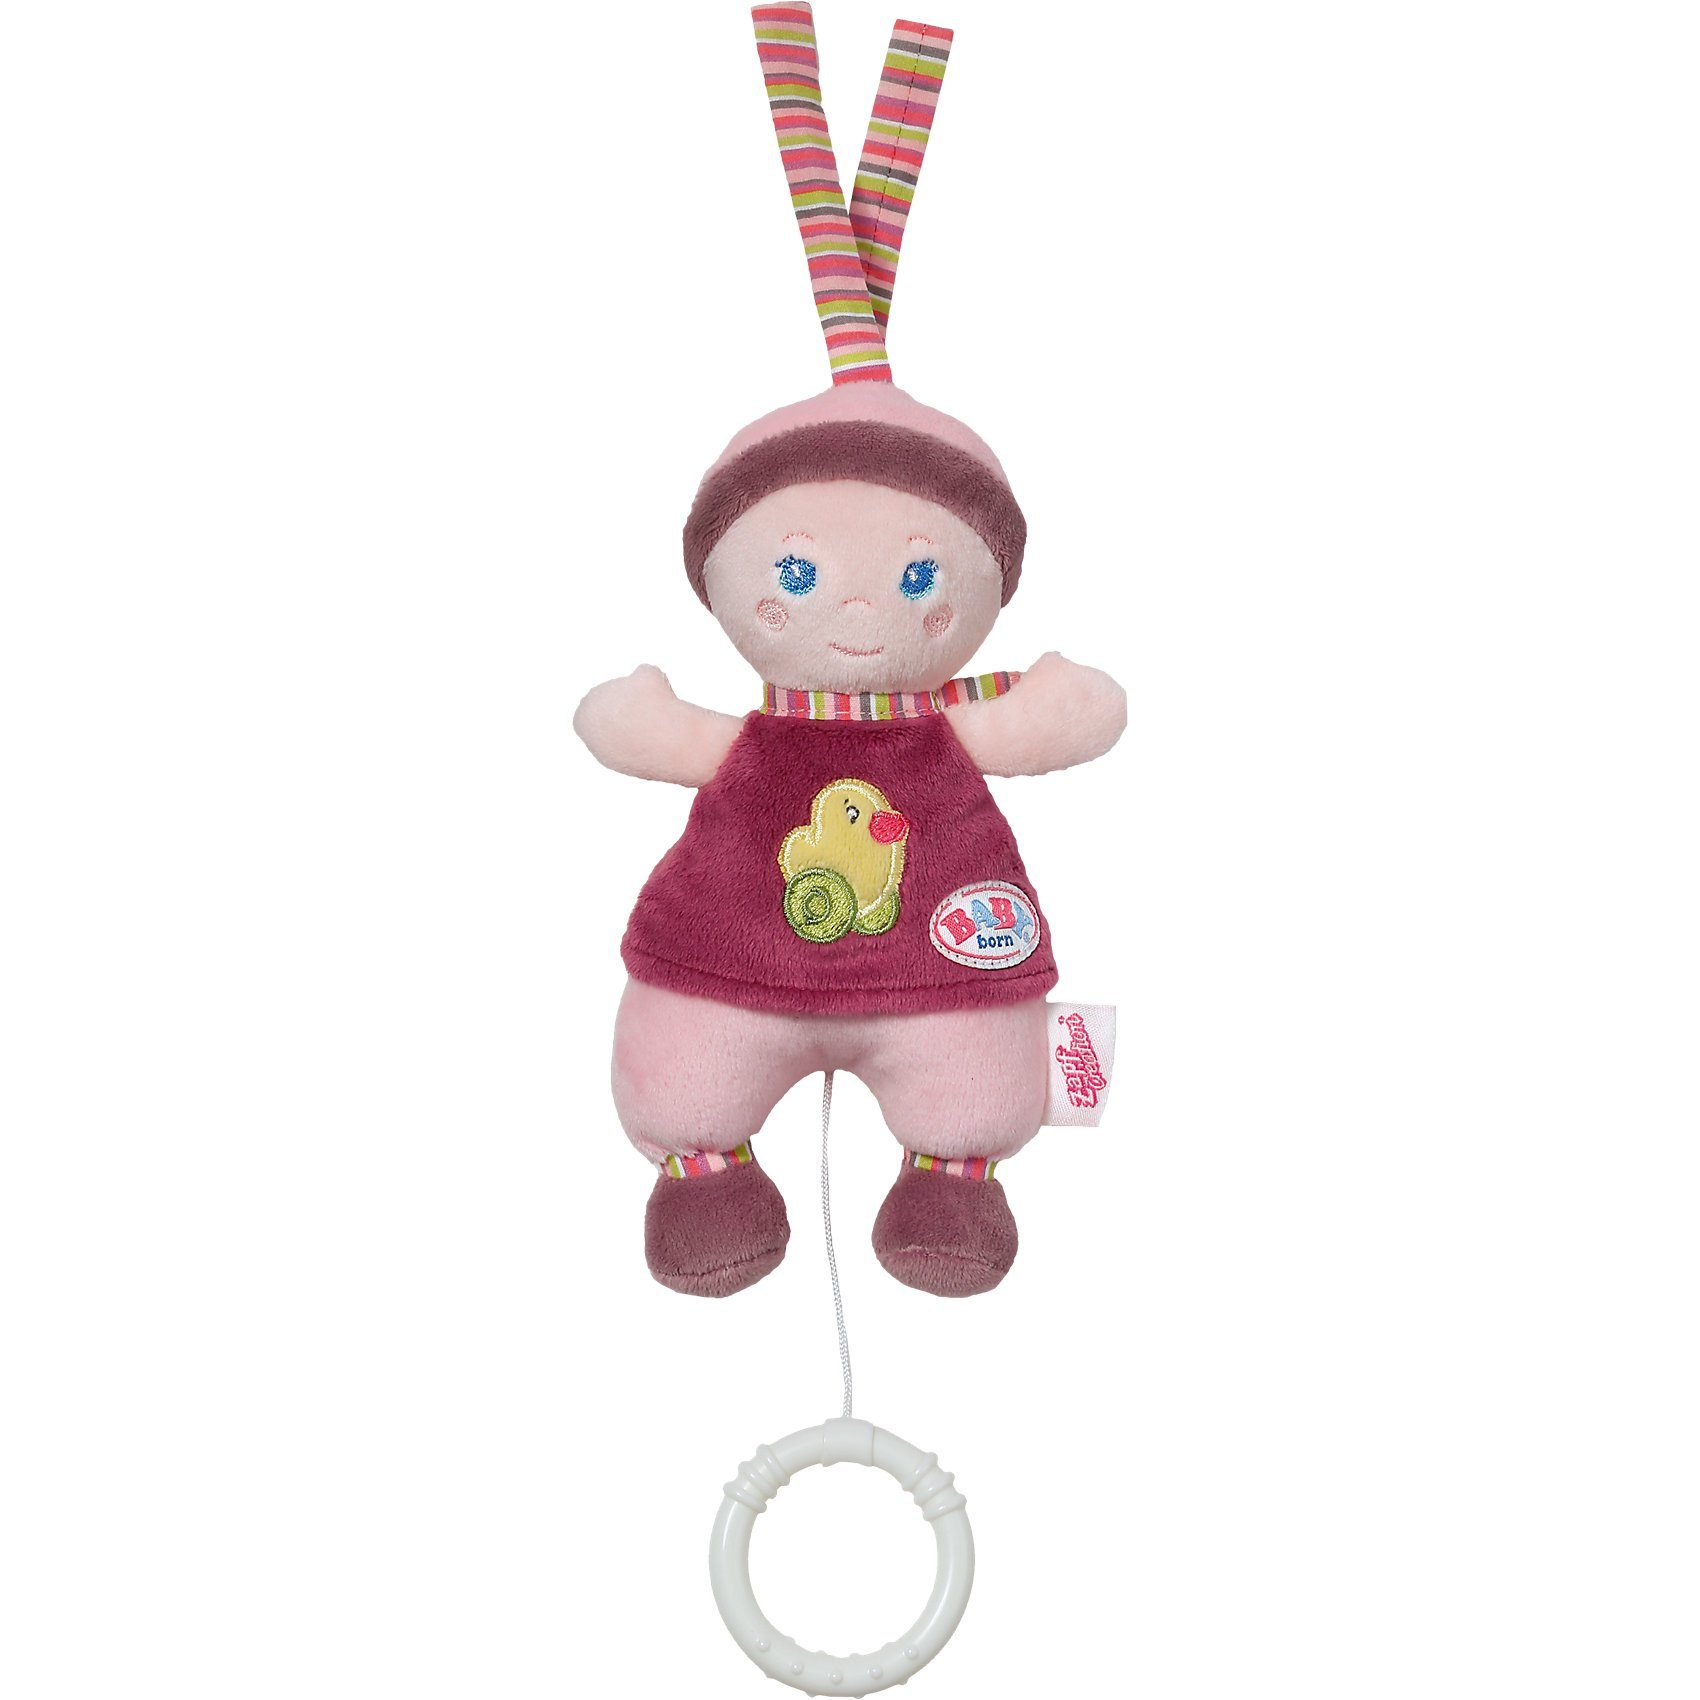 Zapf Creation BABY born® for babies Spieluhr Puppe 18 cm